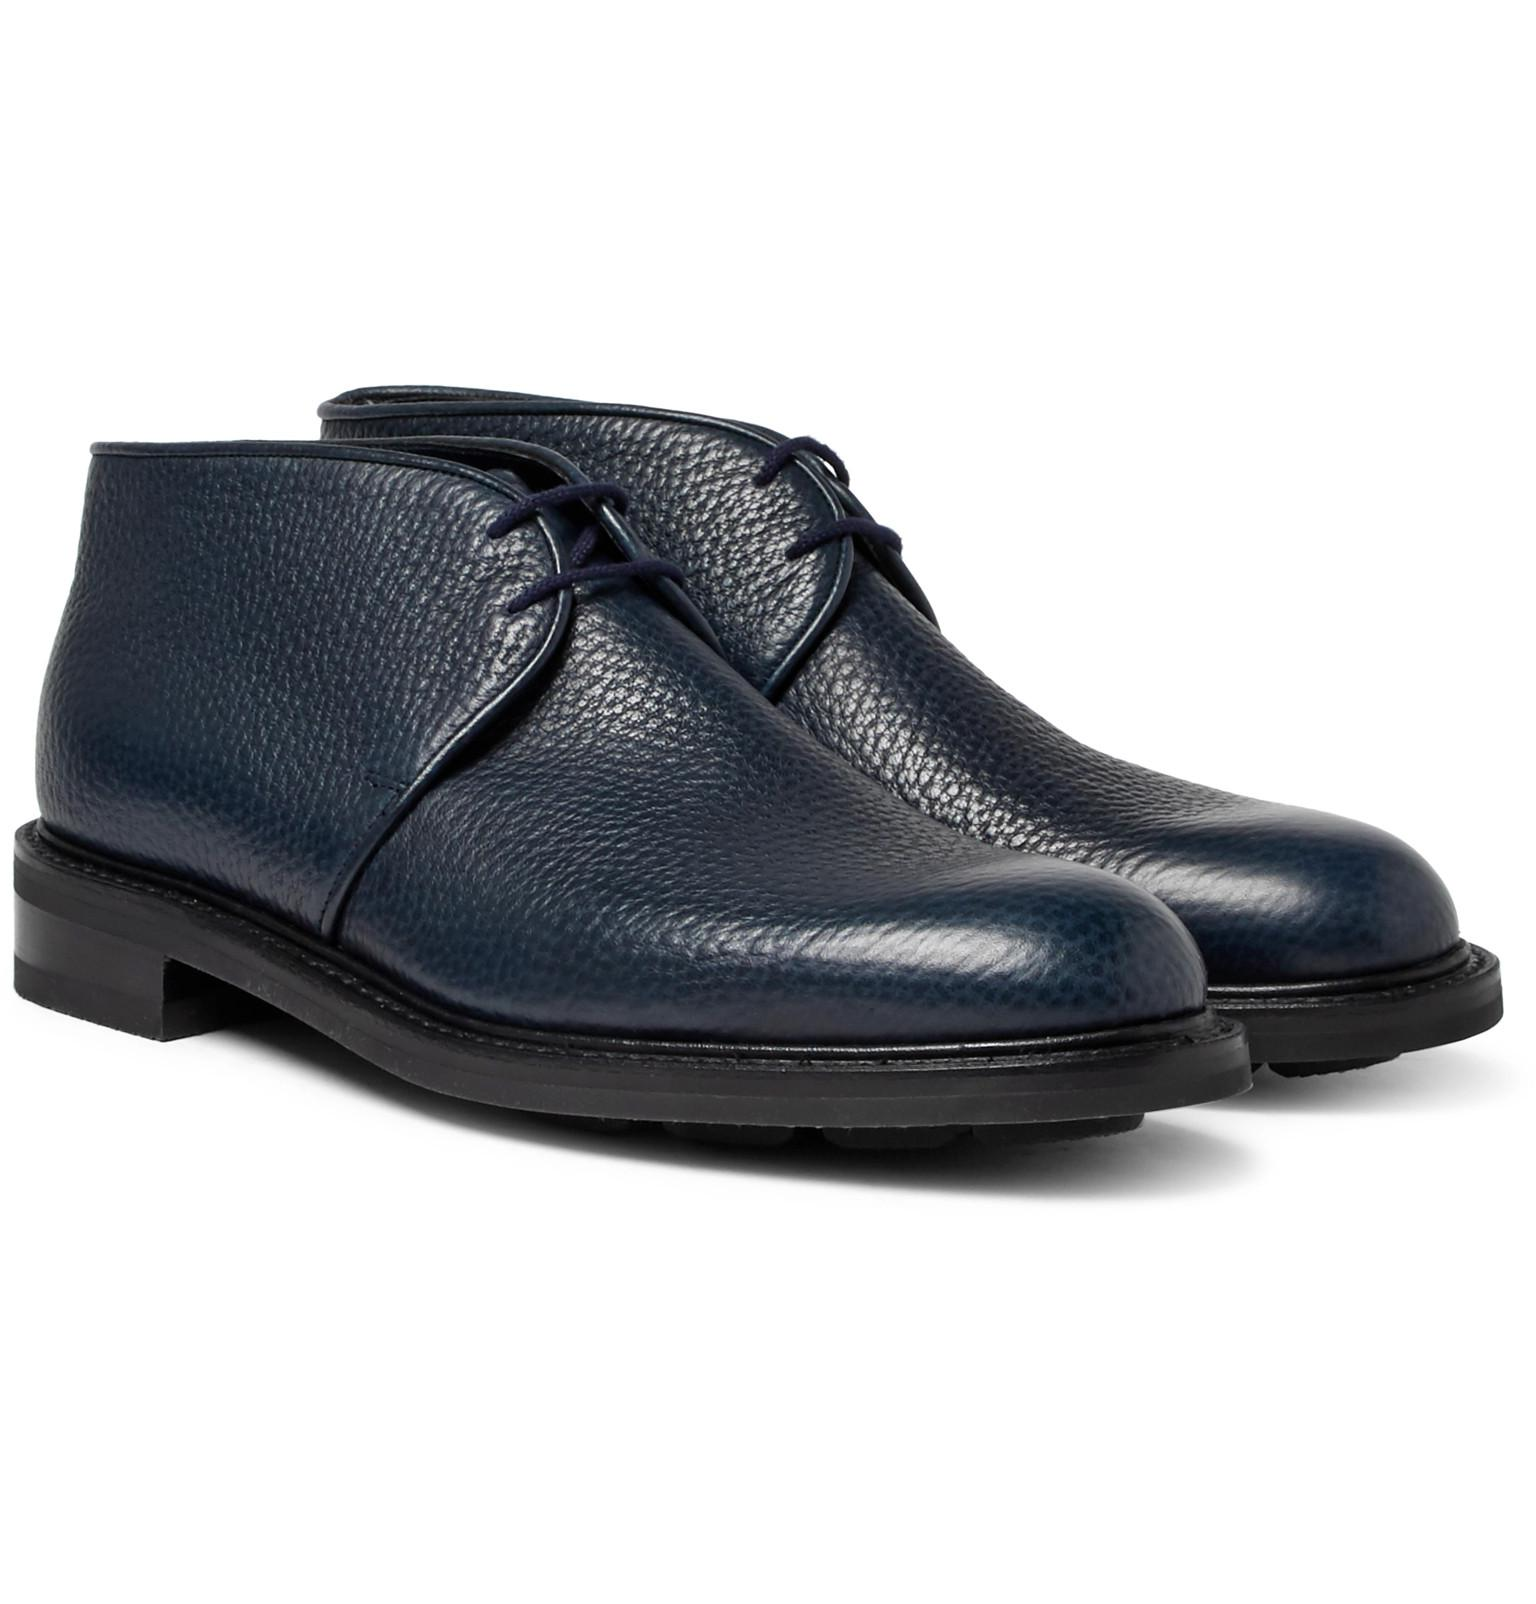 John Lobb Grove Full-Grain Leather Chukka Boots cheap store buy online good selling sale online free shipping official fake sale online LBoCff30r